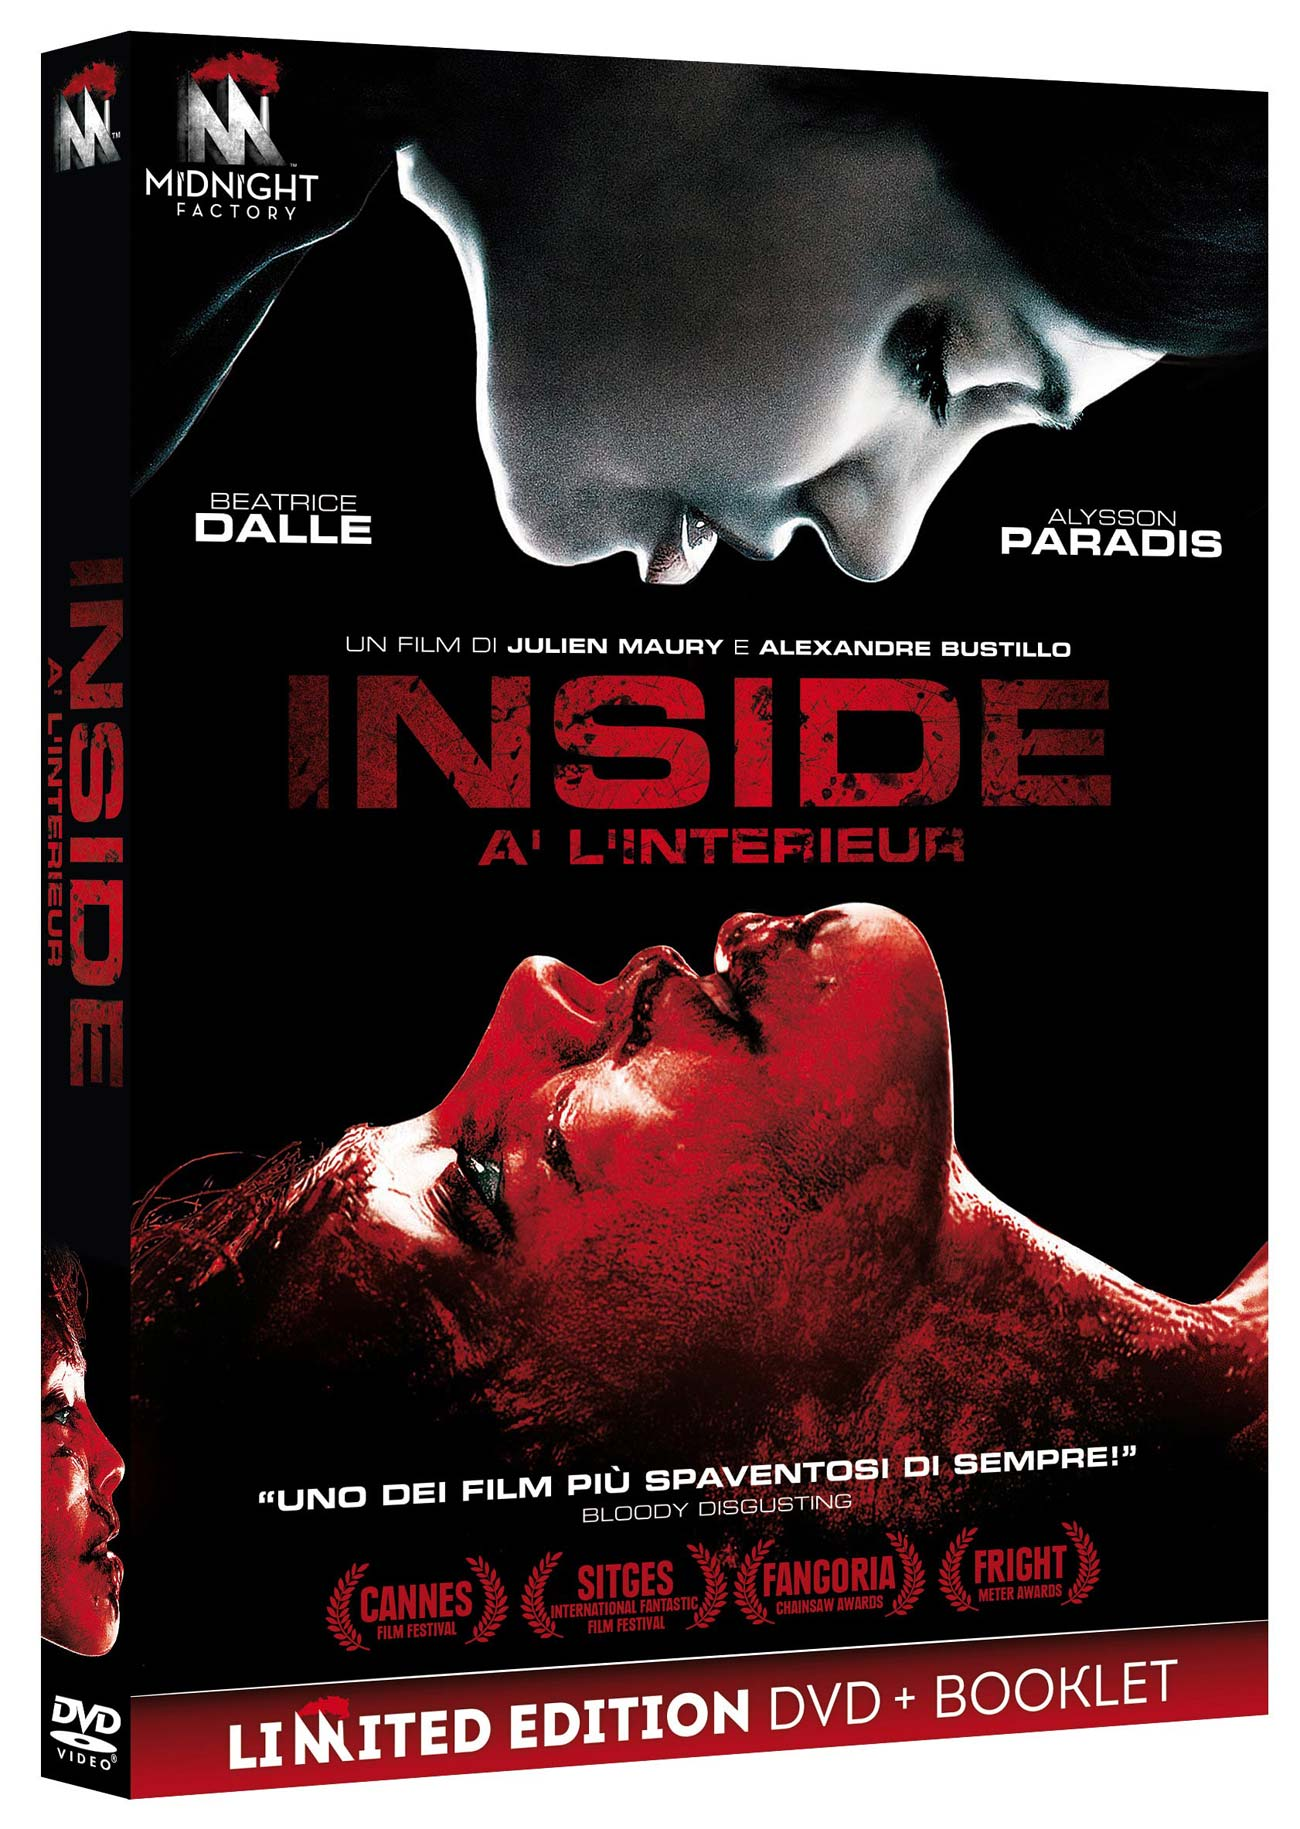 INSIDE (LTD EDITION) (DVD+BOOKLET) (DVD)